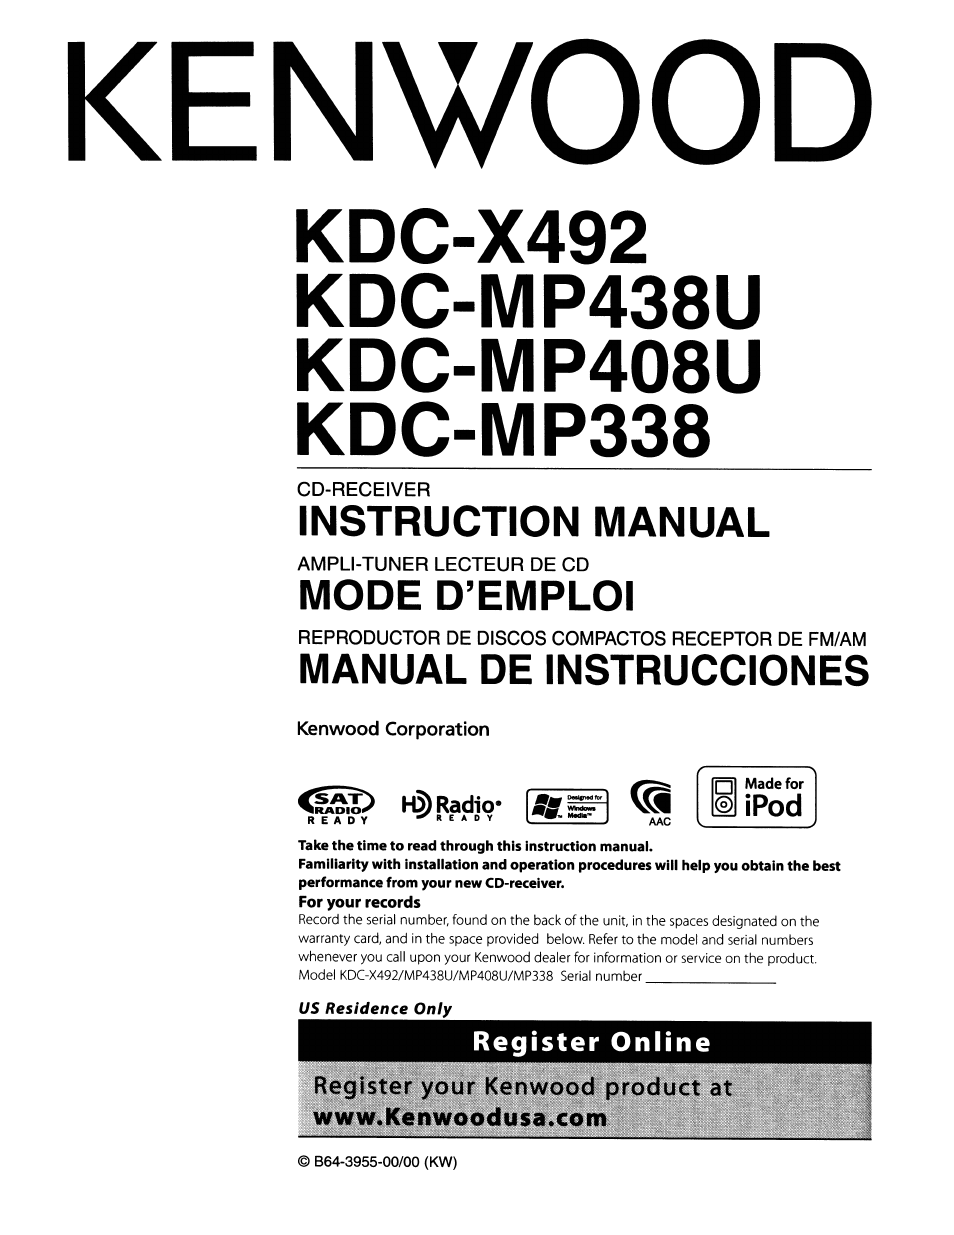 Kenwood KDC-MP408U User Manual | 32 pages | Also for: KDC-MP338, KDC-MP438U